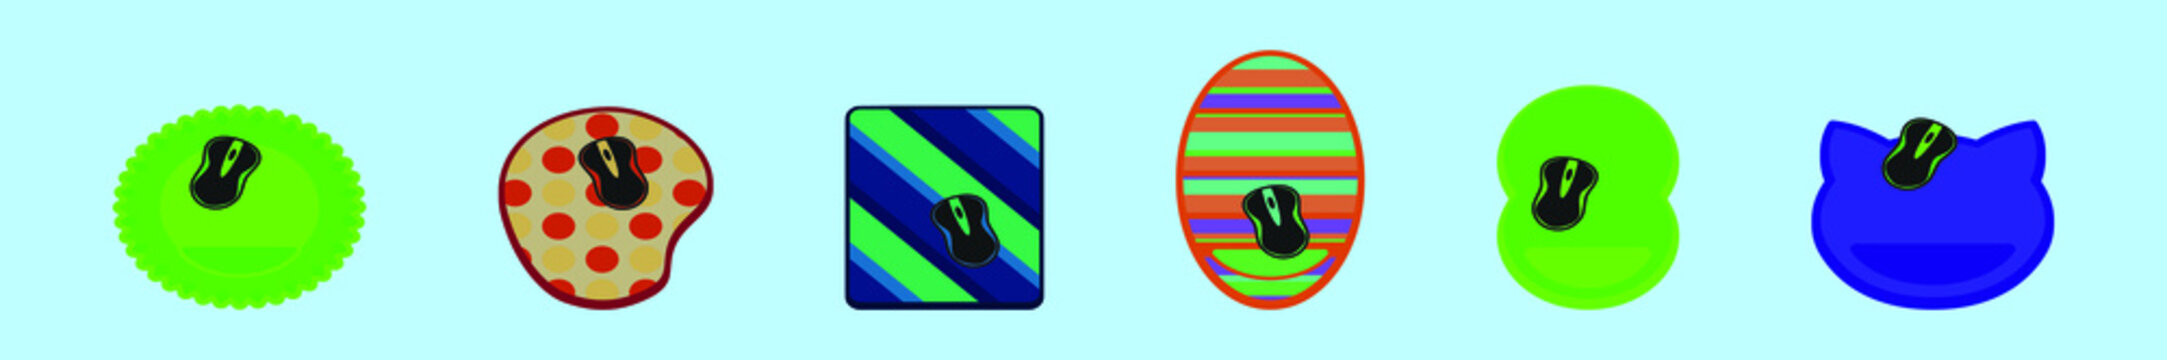 set of mouse pad cartoon icon design template with various models. vector illustration isolated on blue background